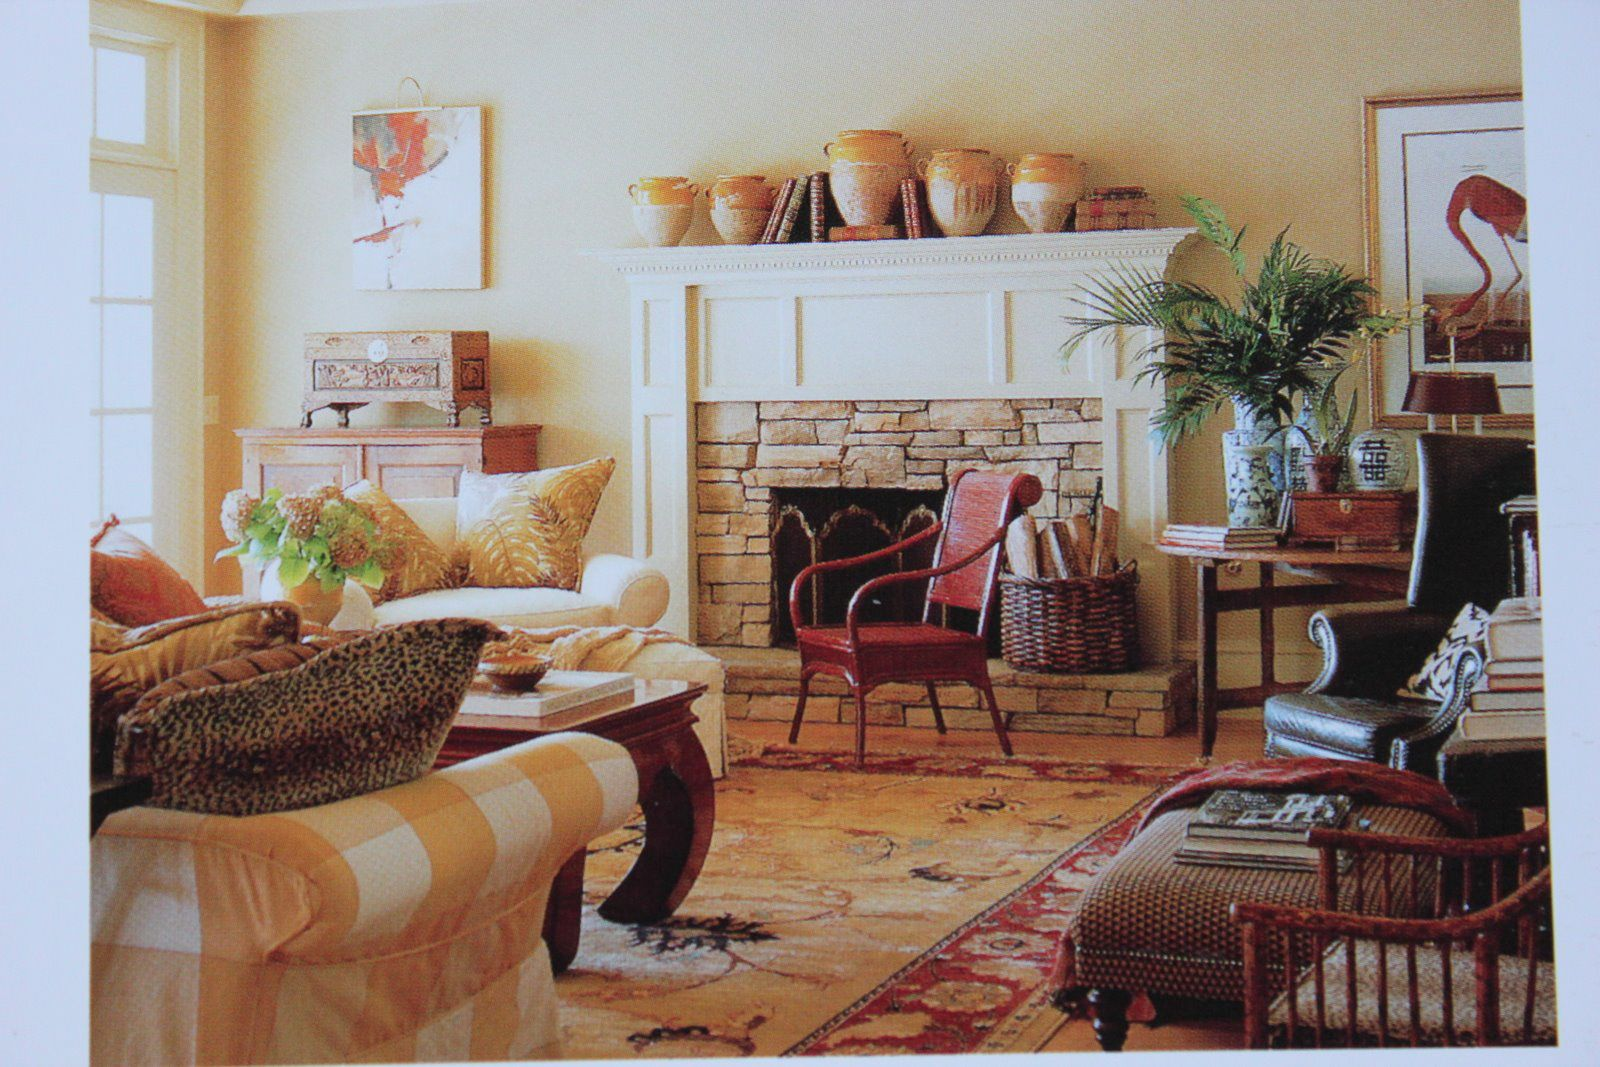 Love The Fireplace From French Country Cottage Blog Living Room - French country cottage blog